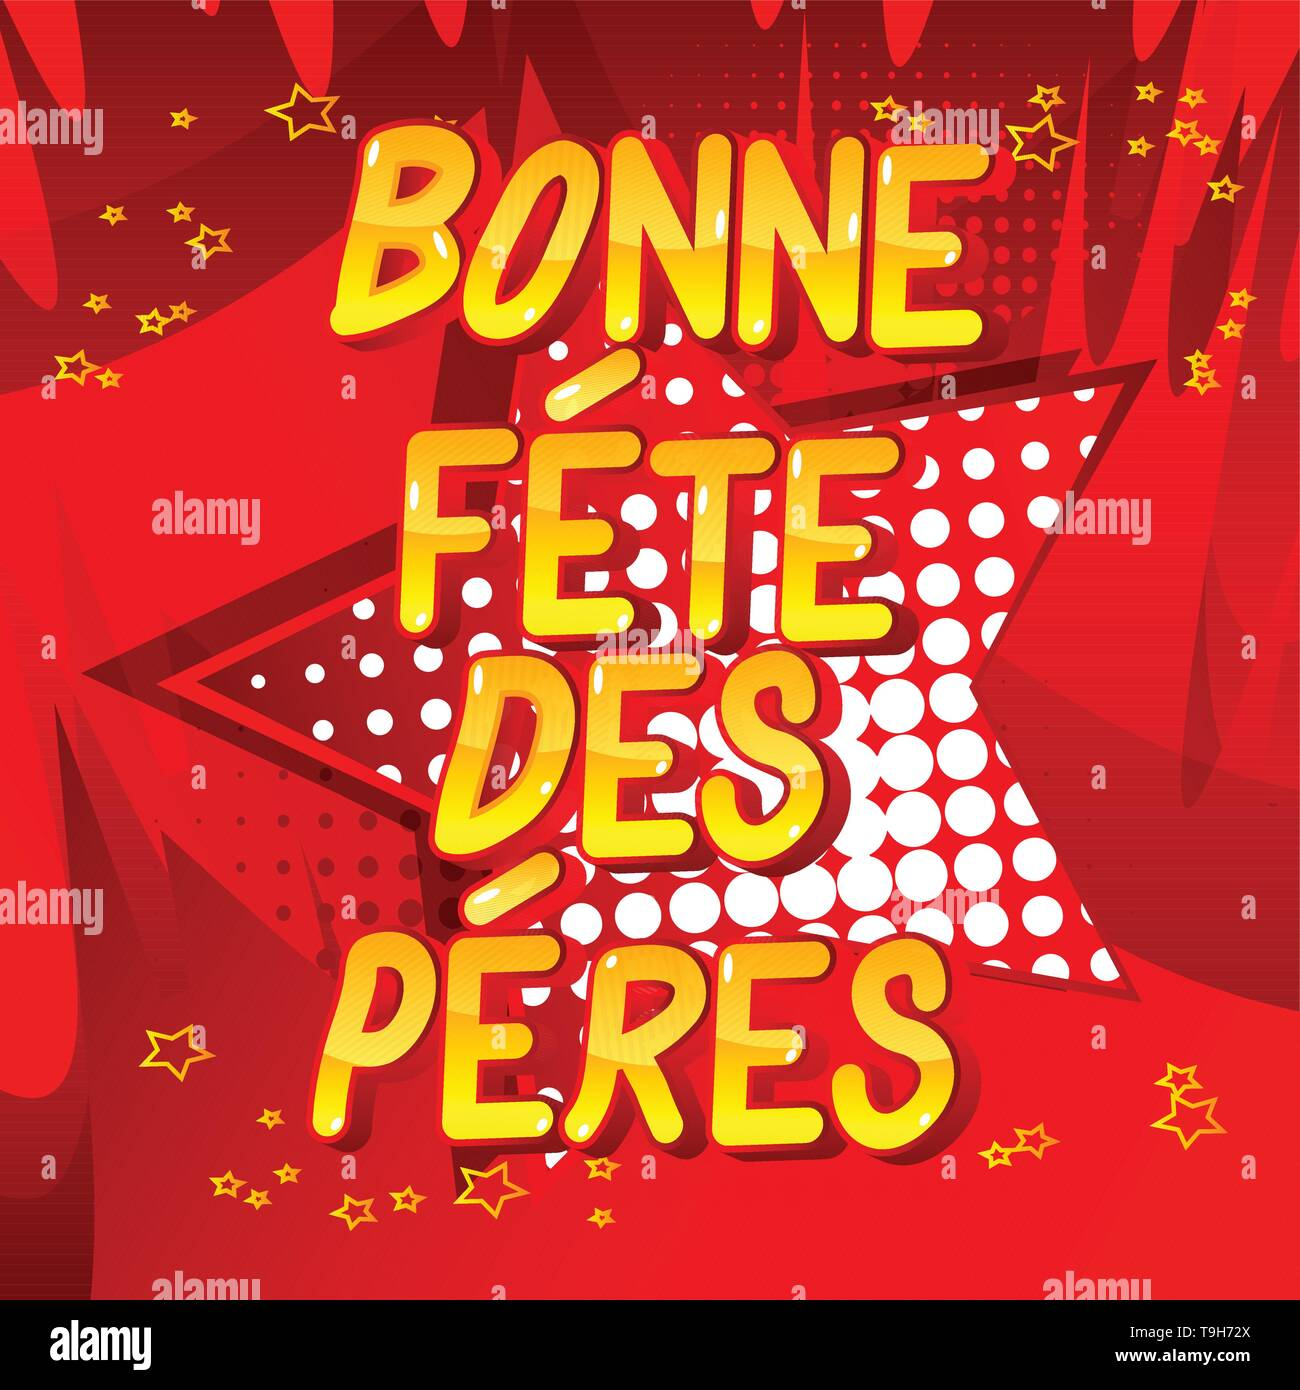 Bonne Fete Des Peres (Father's Day in French) Vector illustrated comic book style phrase on abstract background. - Stock Image